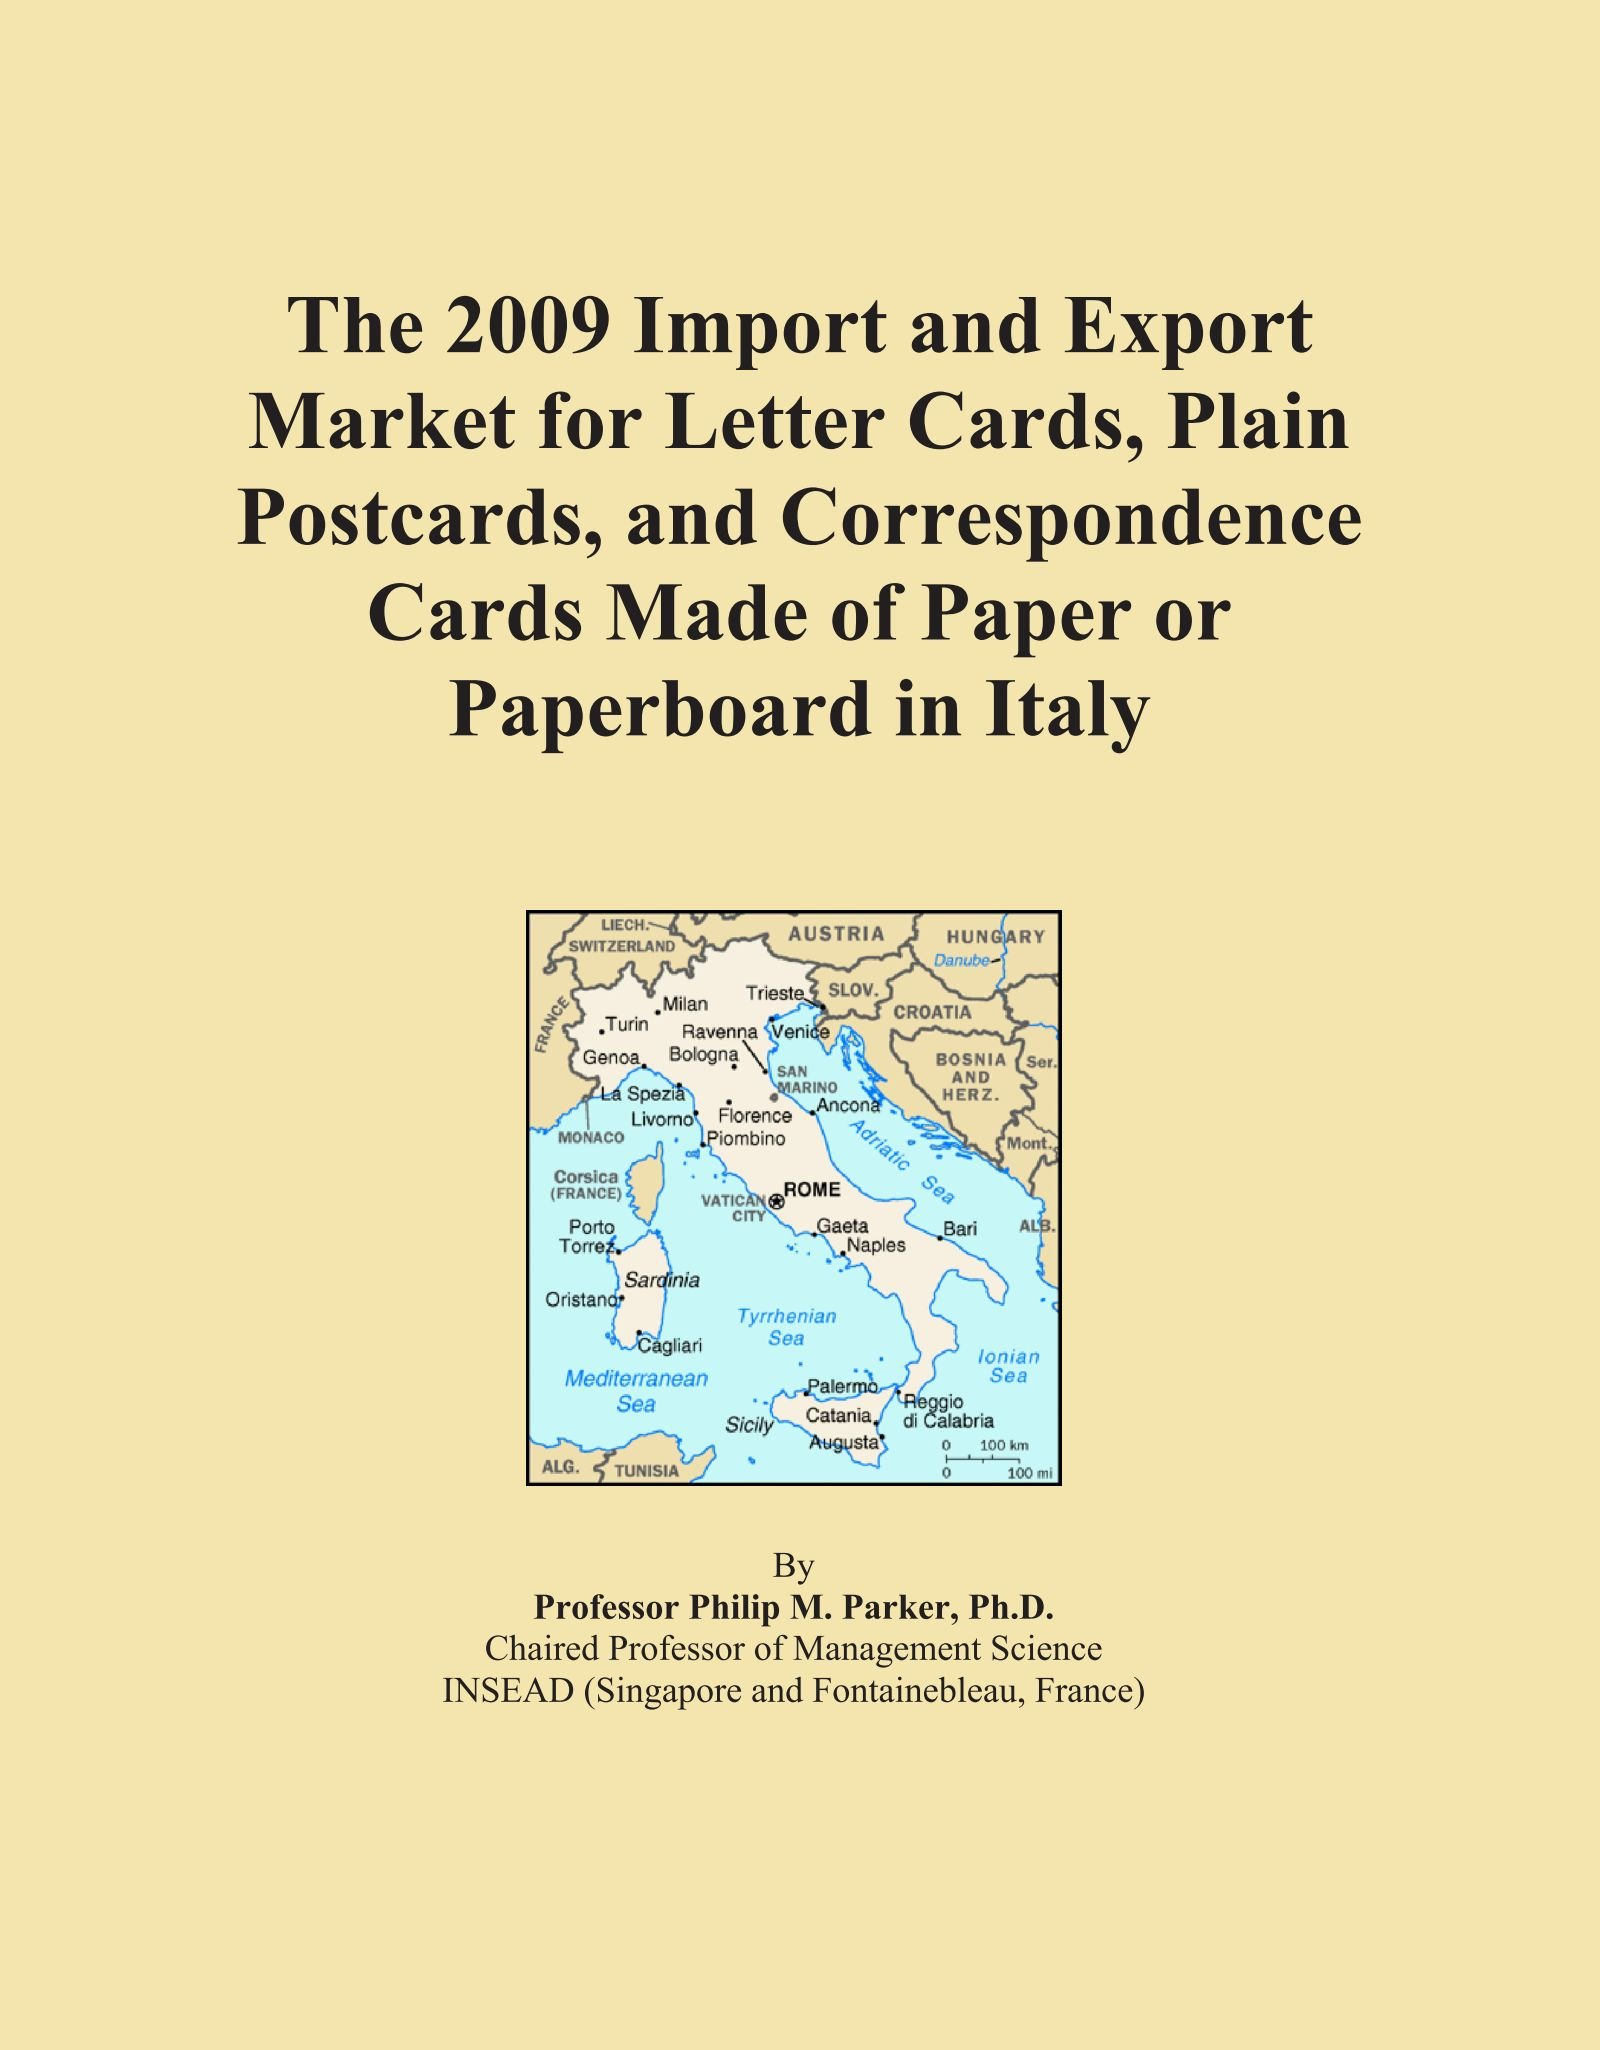 The 2009 Import and Export Market for Letter Cards, Plain Postcards, and Correspondence Cards Made of Paper or Paperboard in Italy PDF